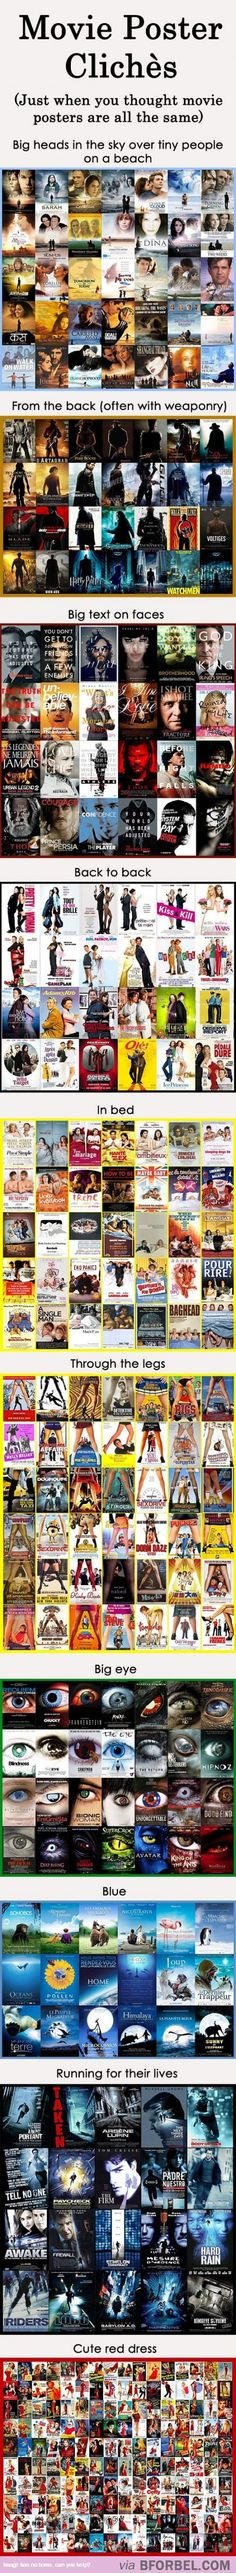 10 Types Of Movie Poster Clichés That Are More Common Than You Think…